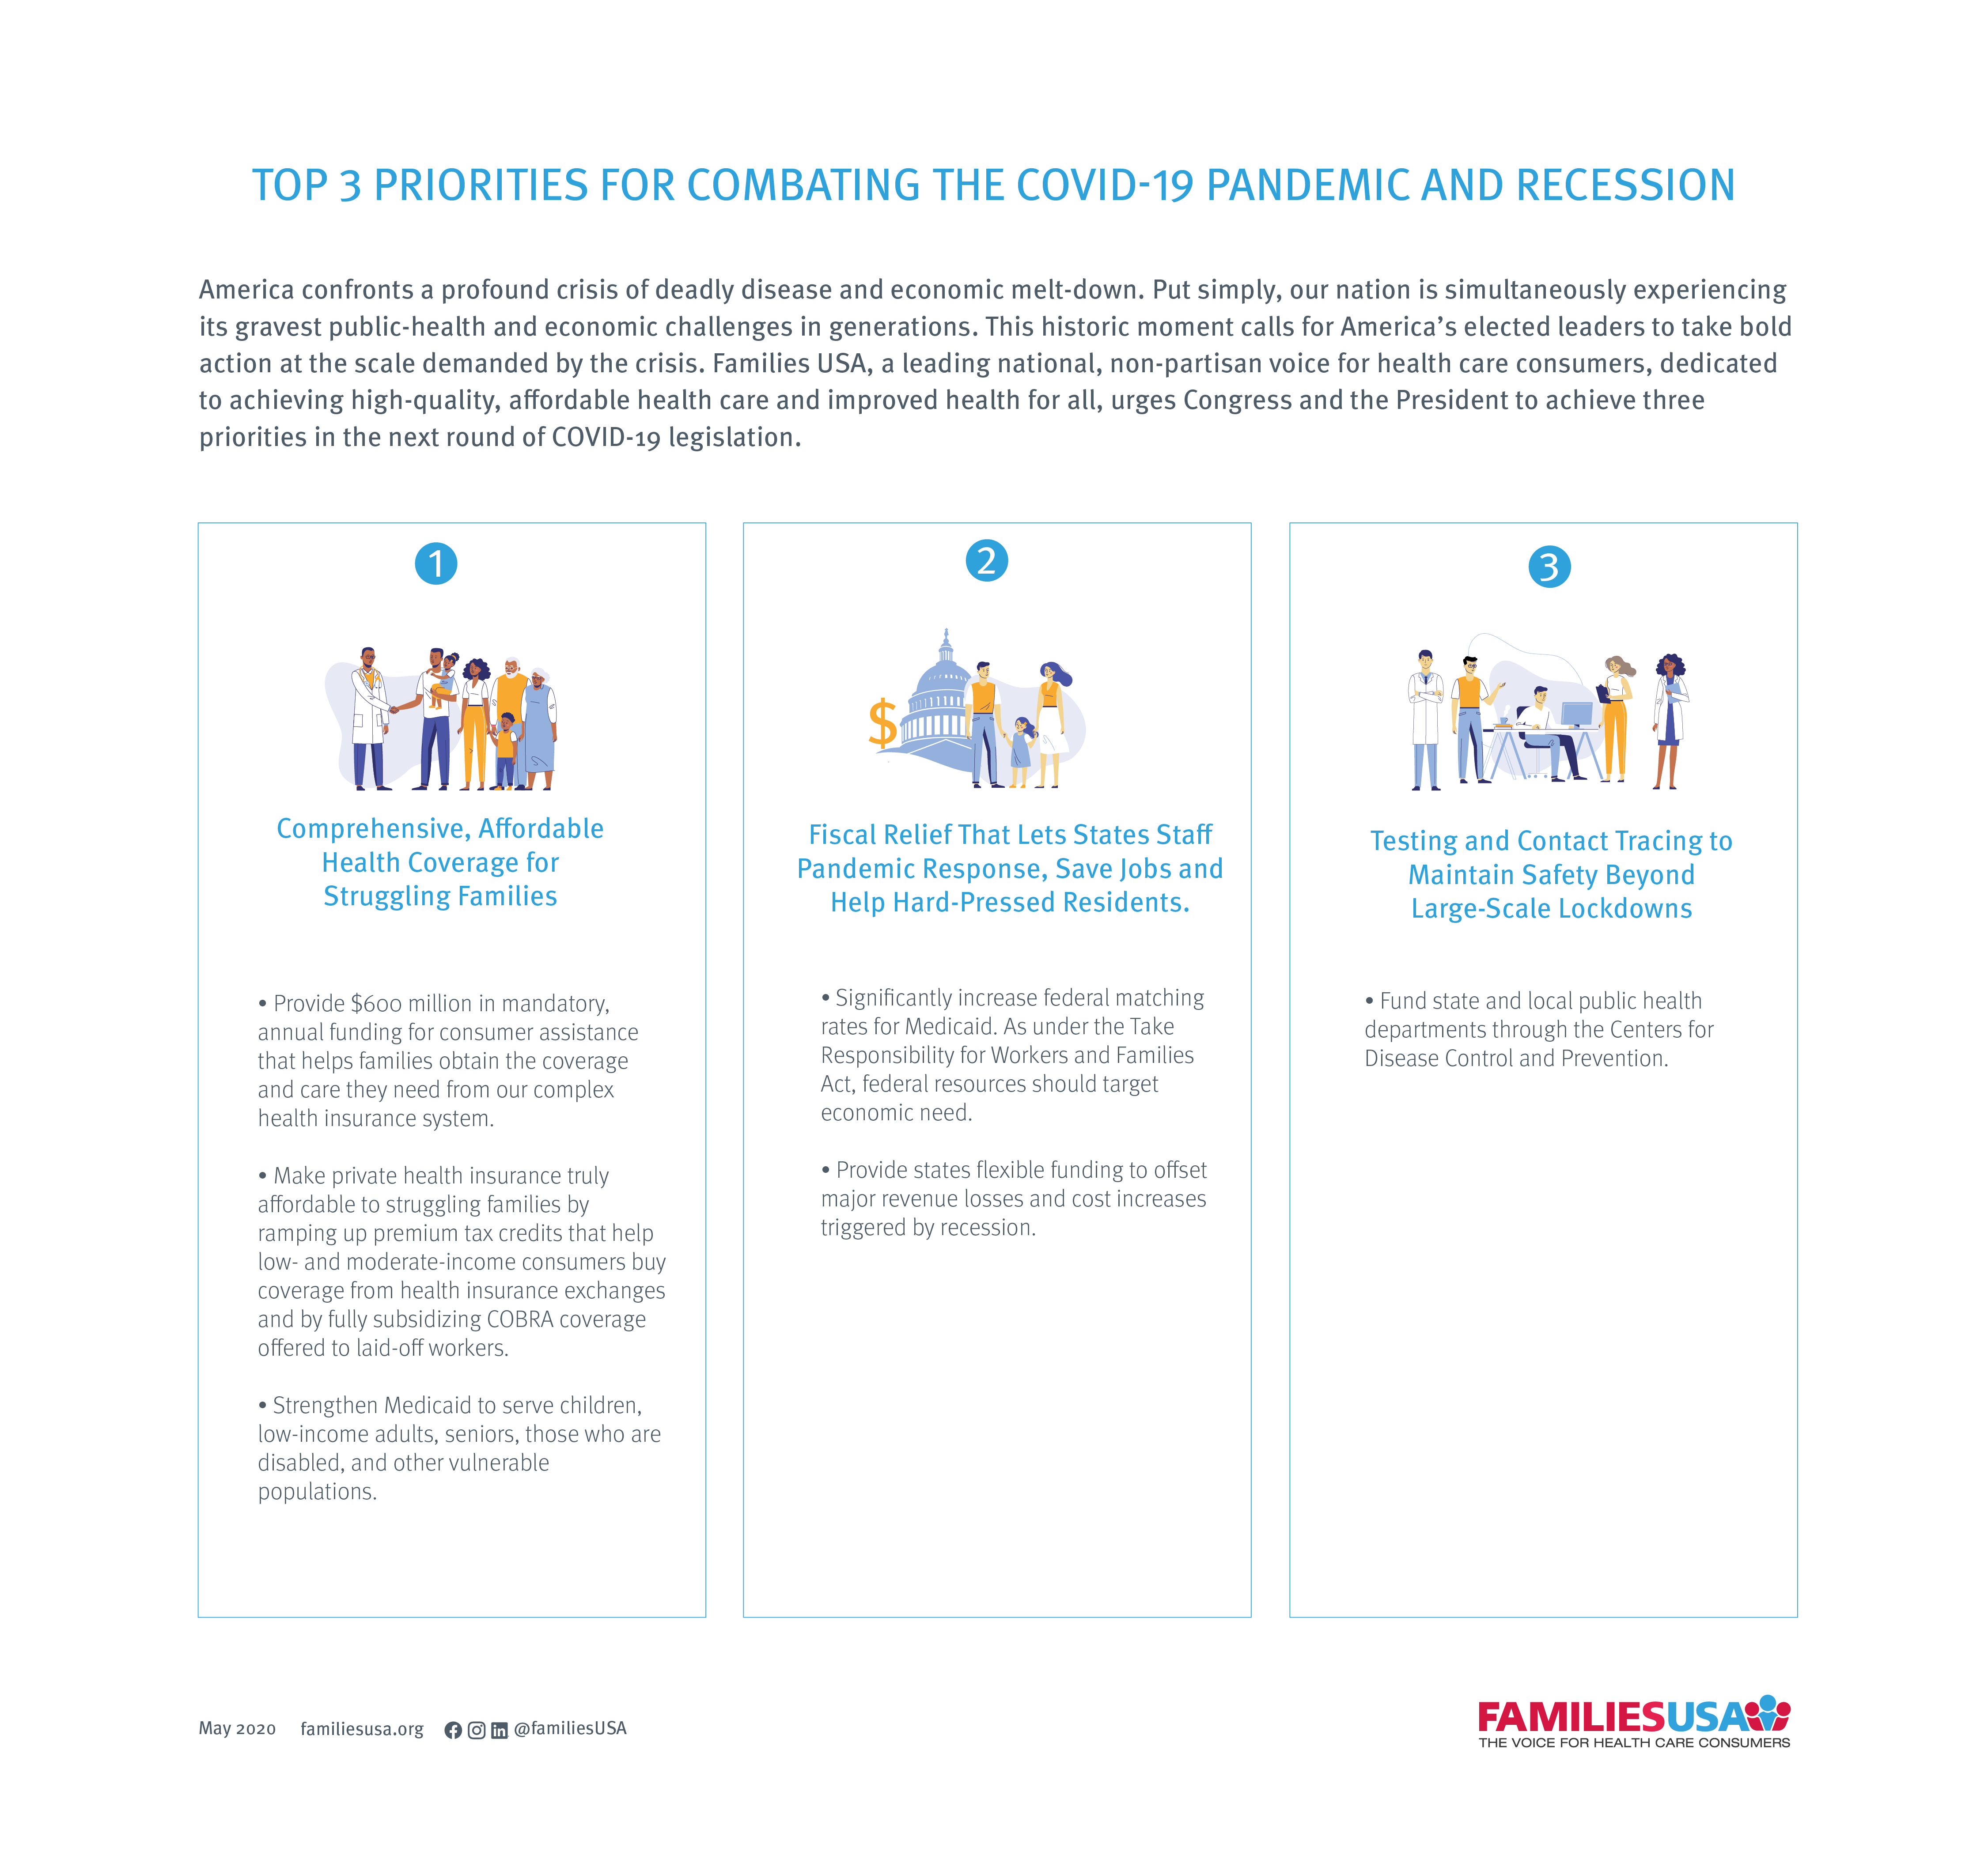 https://familiesusa.org/wp-content/uploads/2020/05/COV_COVID-19-May-Rapid-Response_Infographic_5-7-20_Original.png